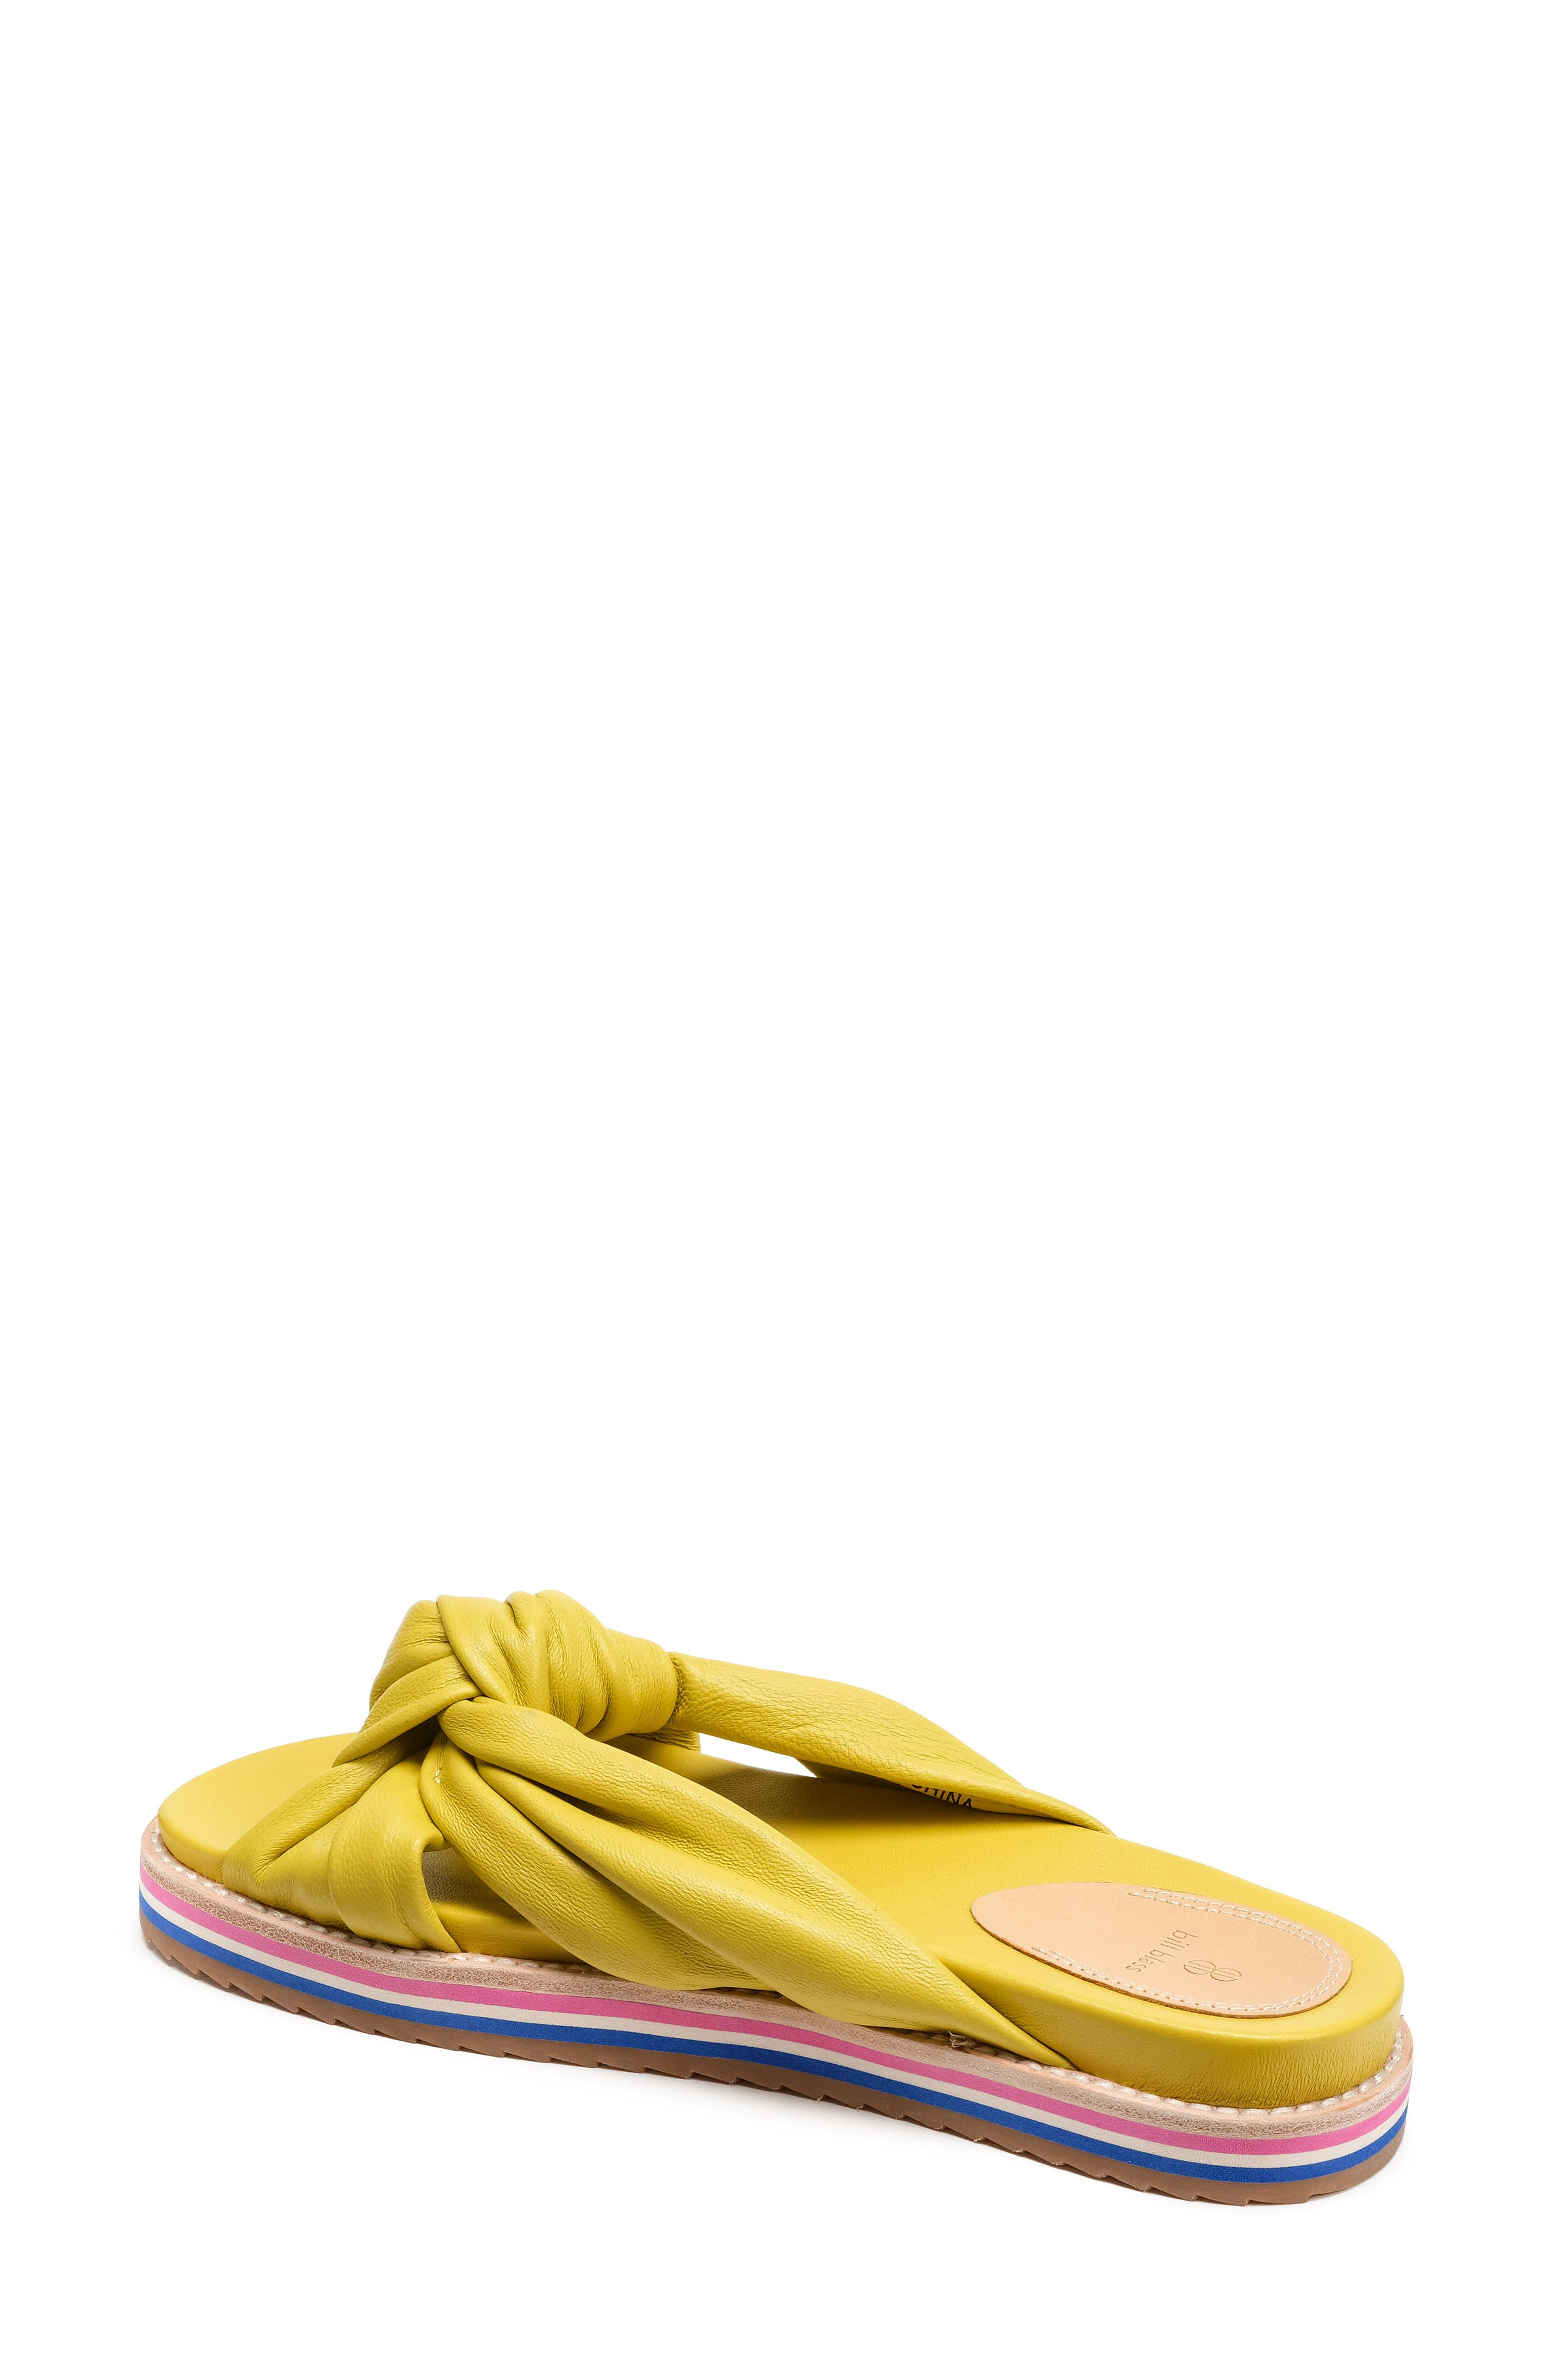 Padget Knotted Slide Sandal,                             Alternate thumbnail 2, color,                             Yellow